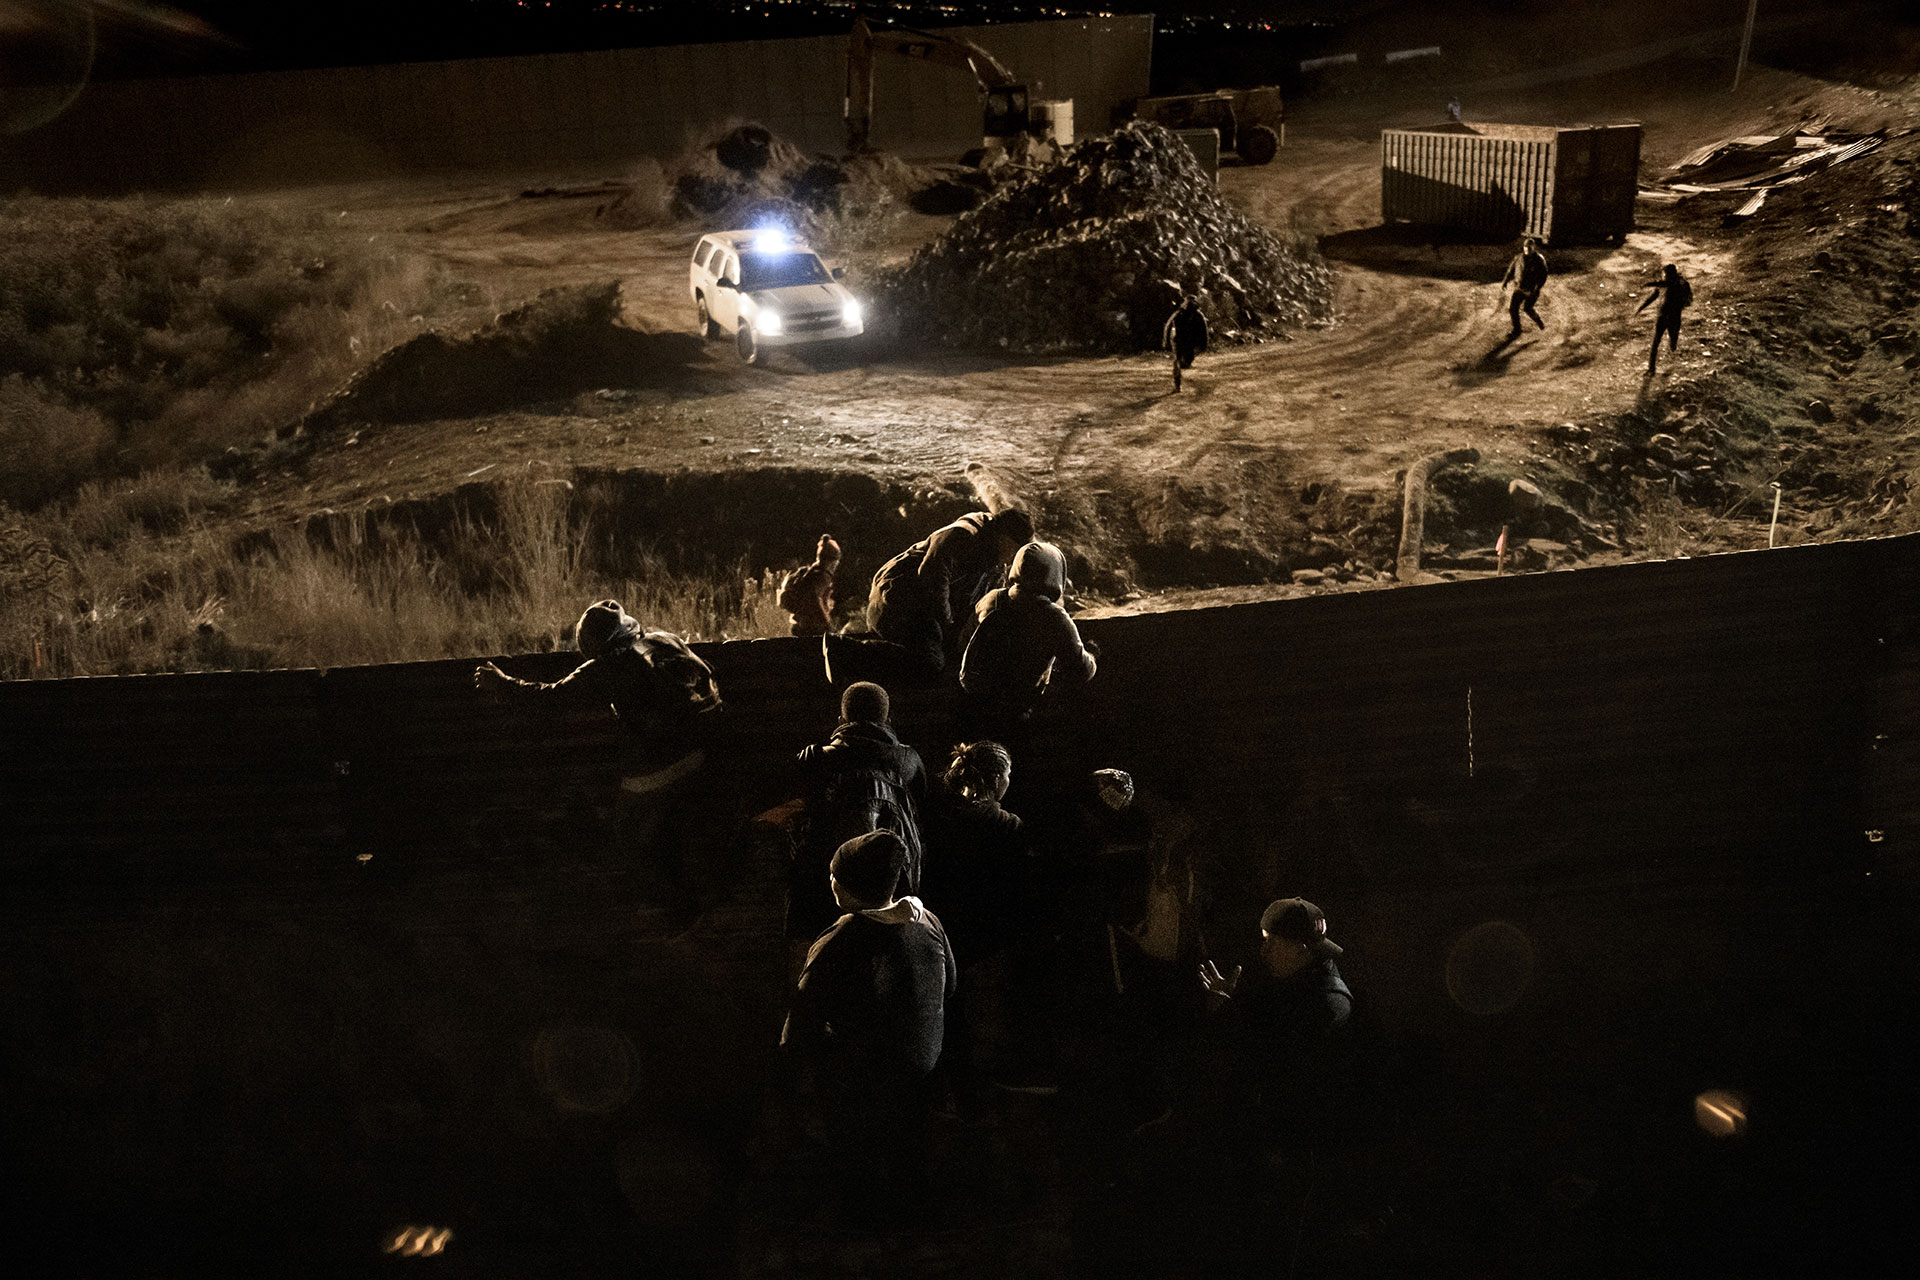 This picture, taken from Tijuana on 25 December 2018, shows how several migrants jump over the border wall while a U.S. Border Patrol official is unable to stop them.